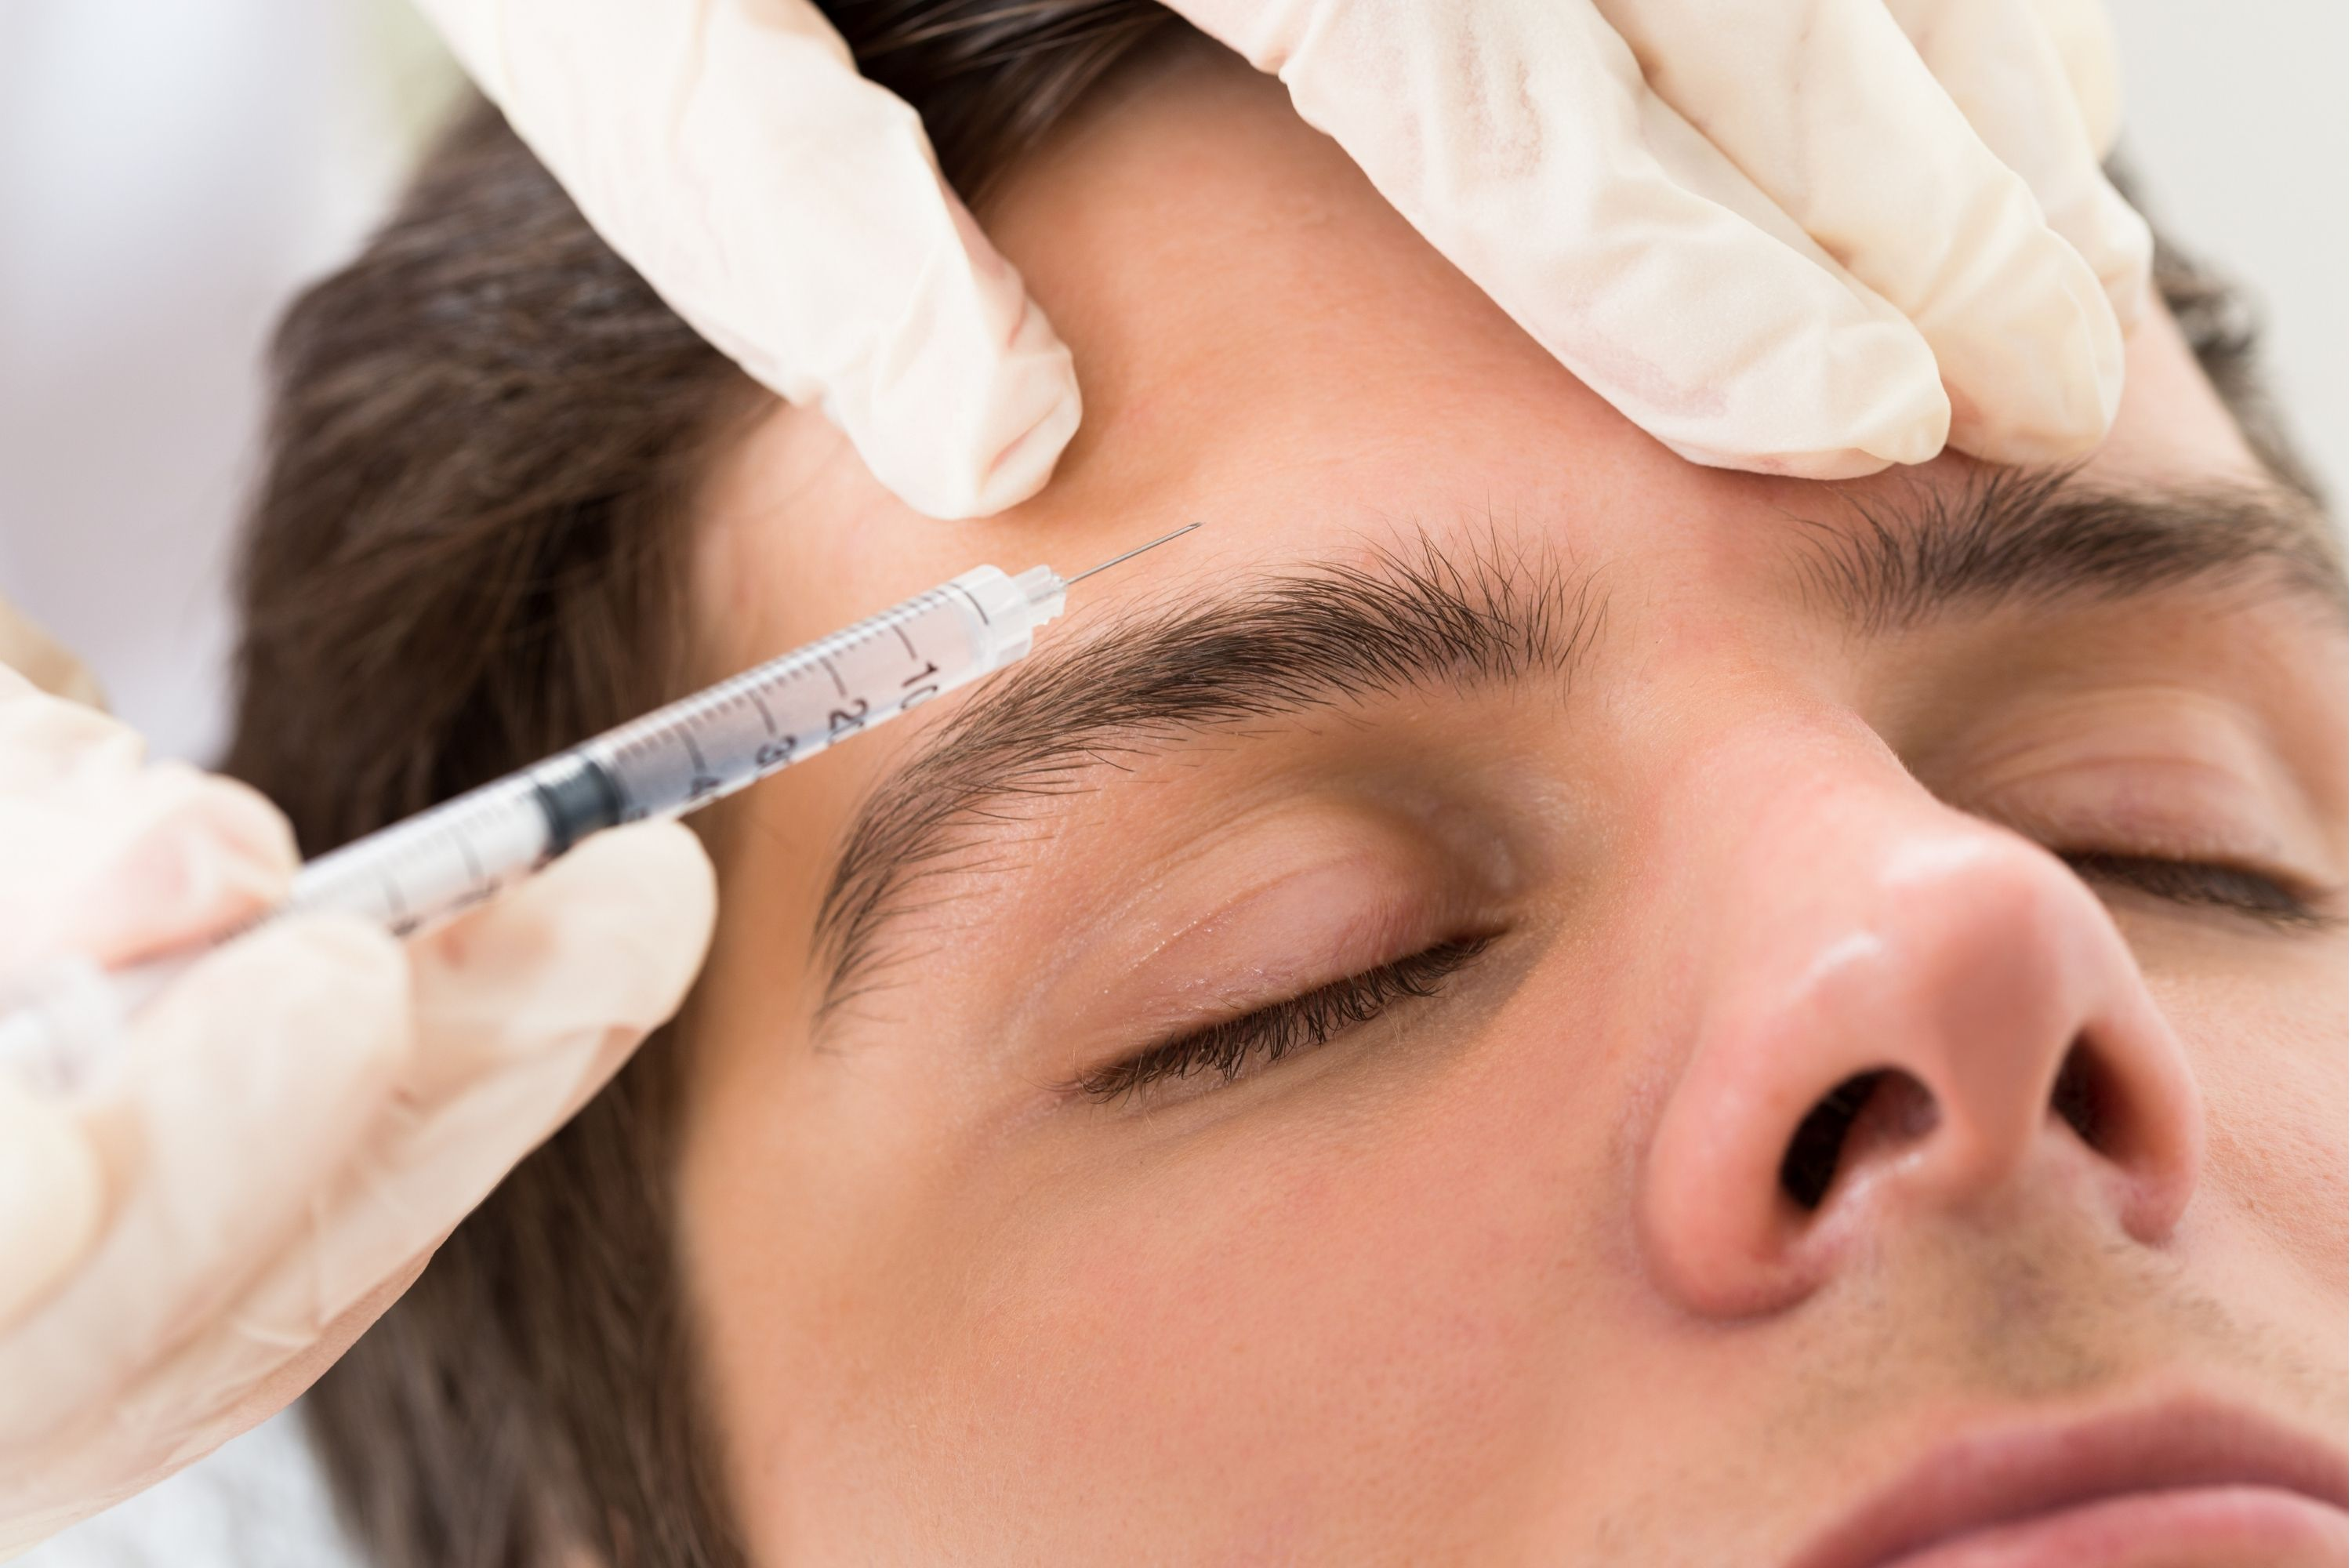 A man receiving Botox injections on the forehead